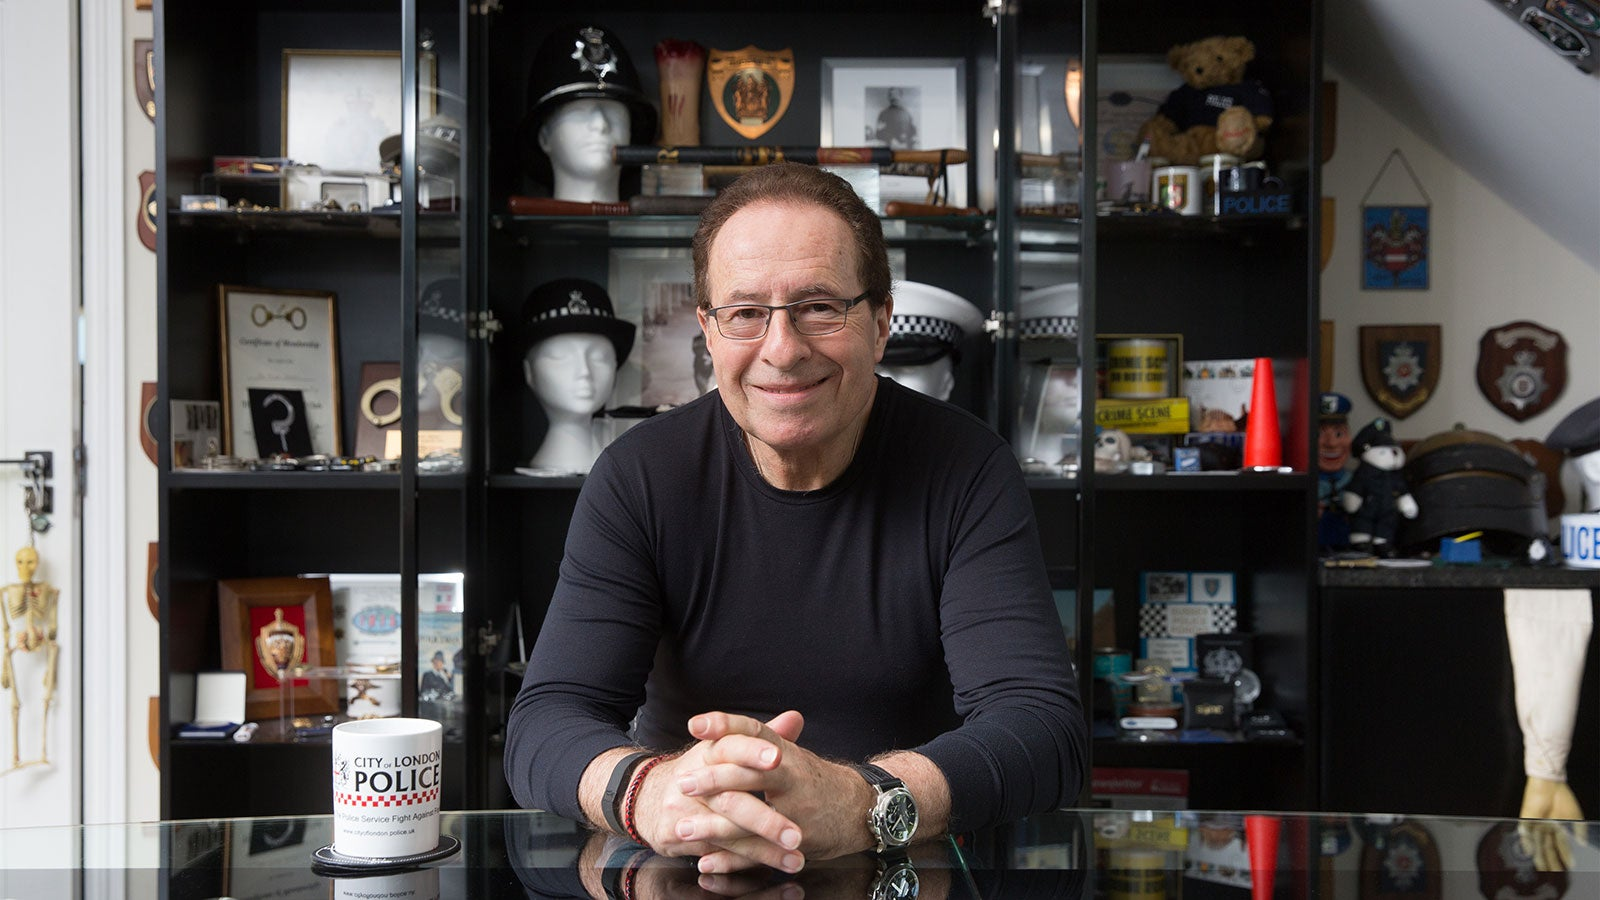 Peter James sat at a table surrounded by police memorabilia.